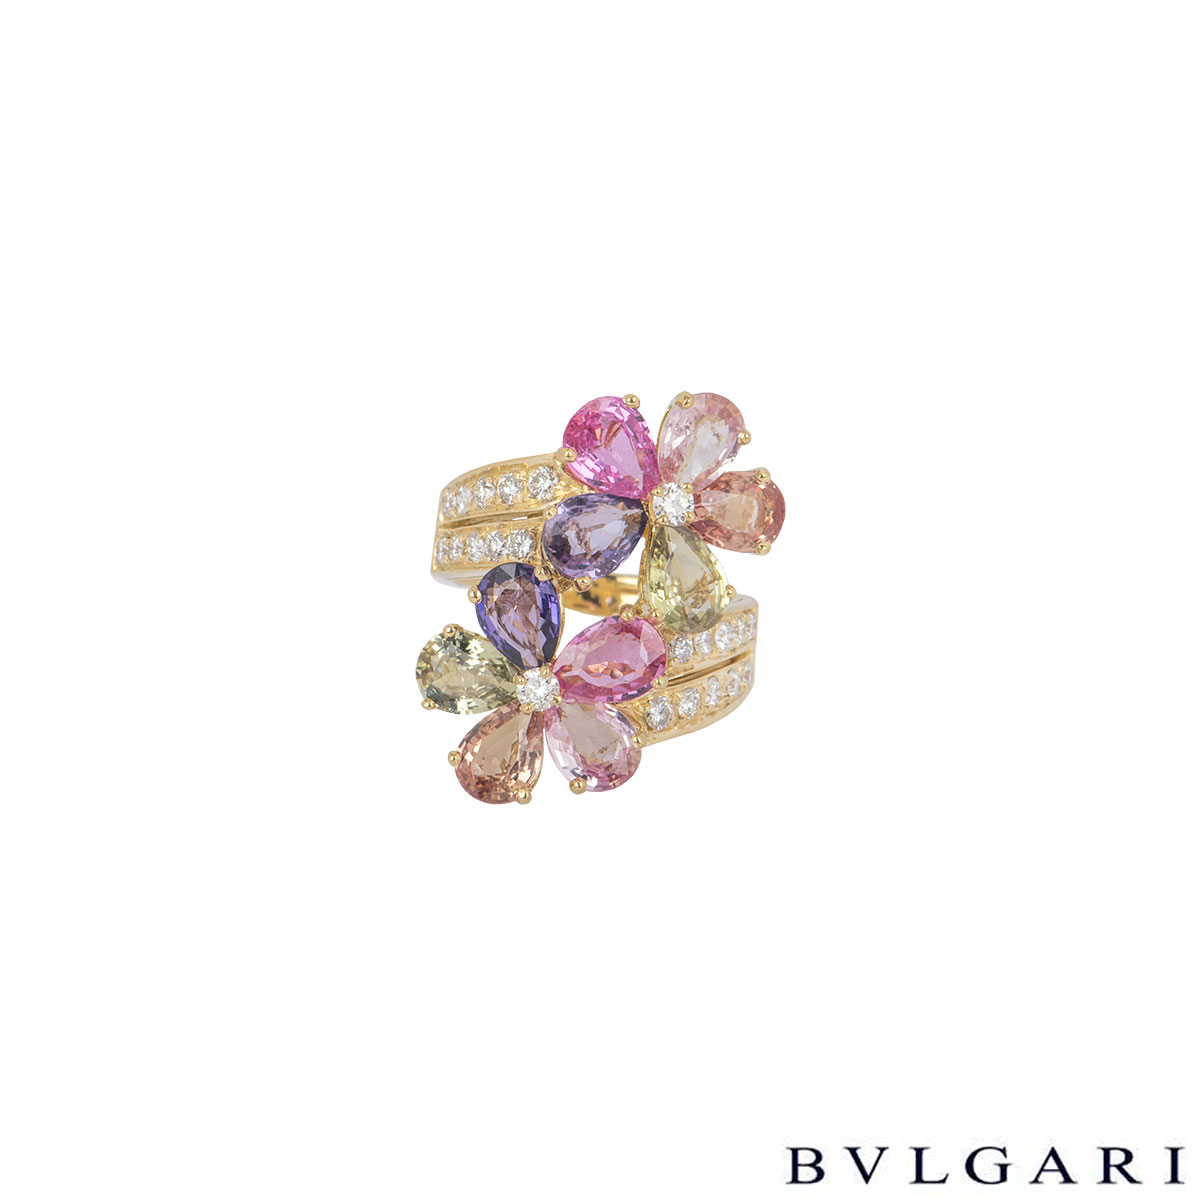 Bvlgari Yellow Gold Diamond Sapphire Flower Ring AN853207